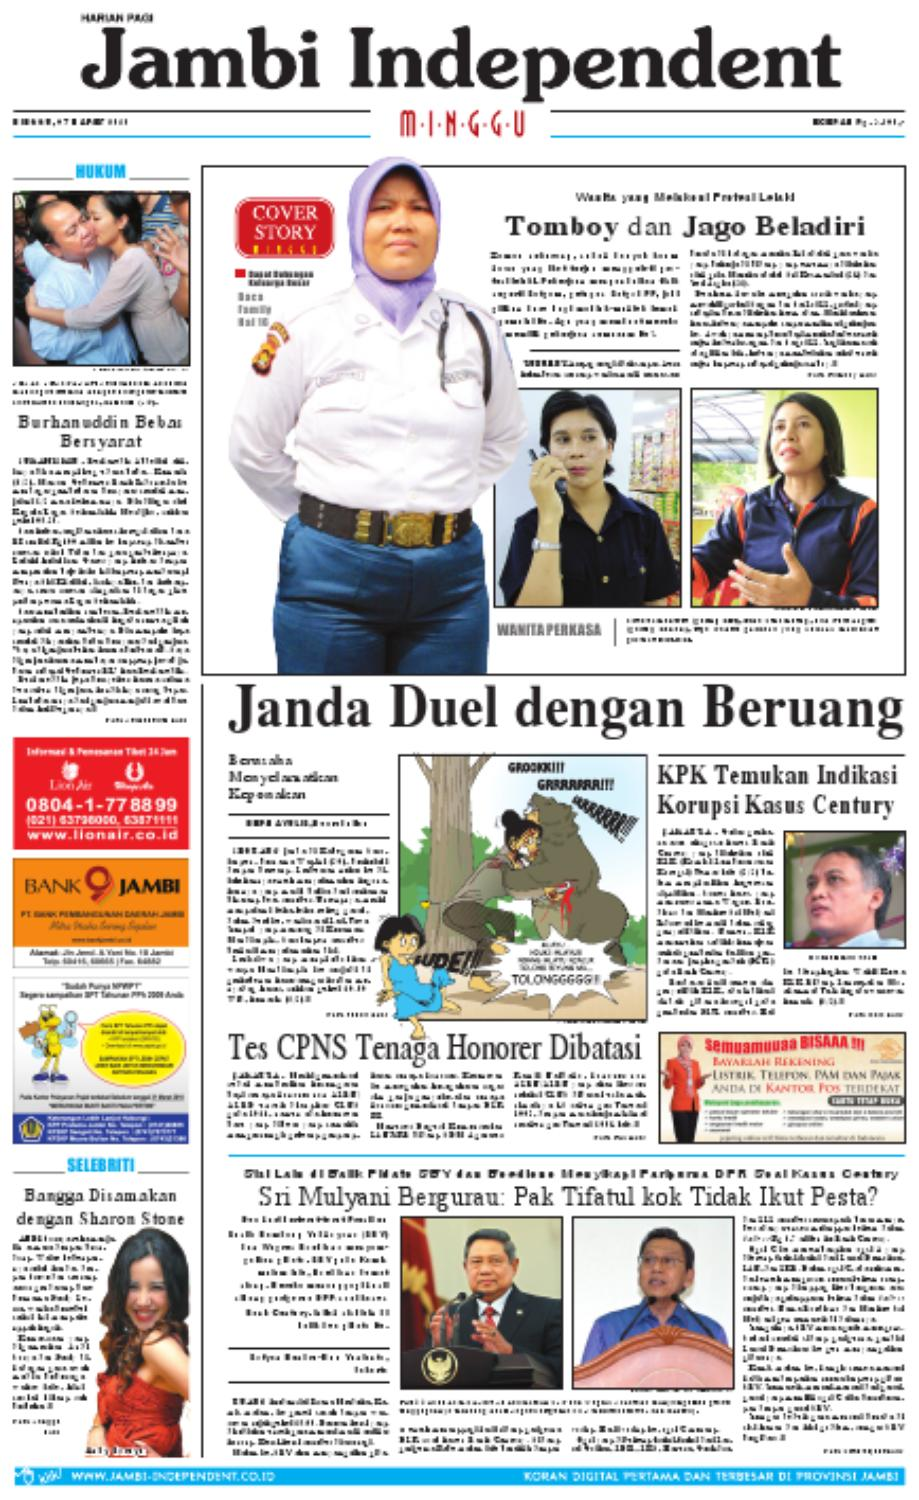 Jambi Independent 07 Maret 2010 By Jambi Independent Issuu